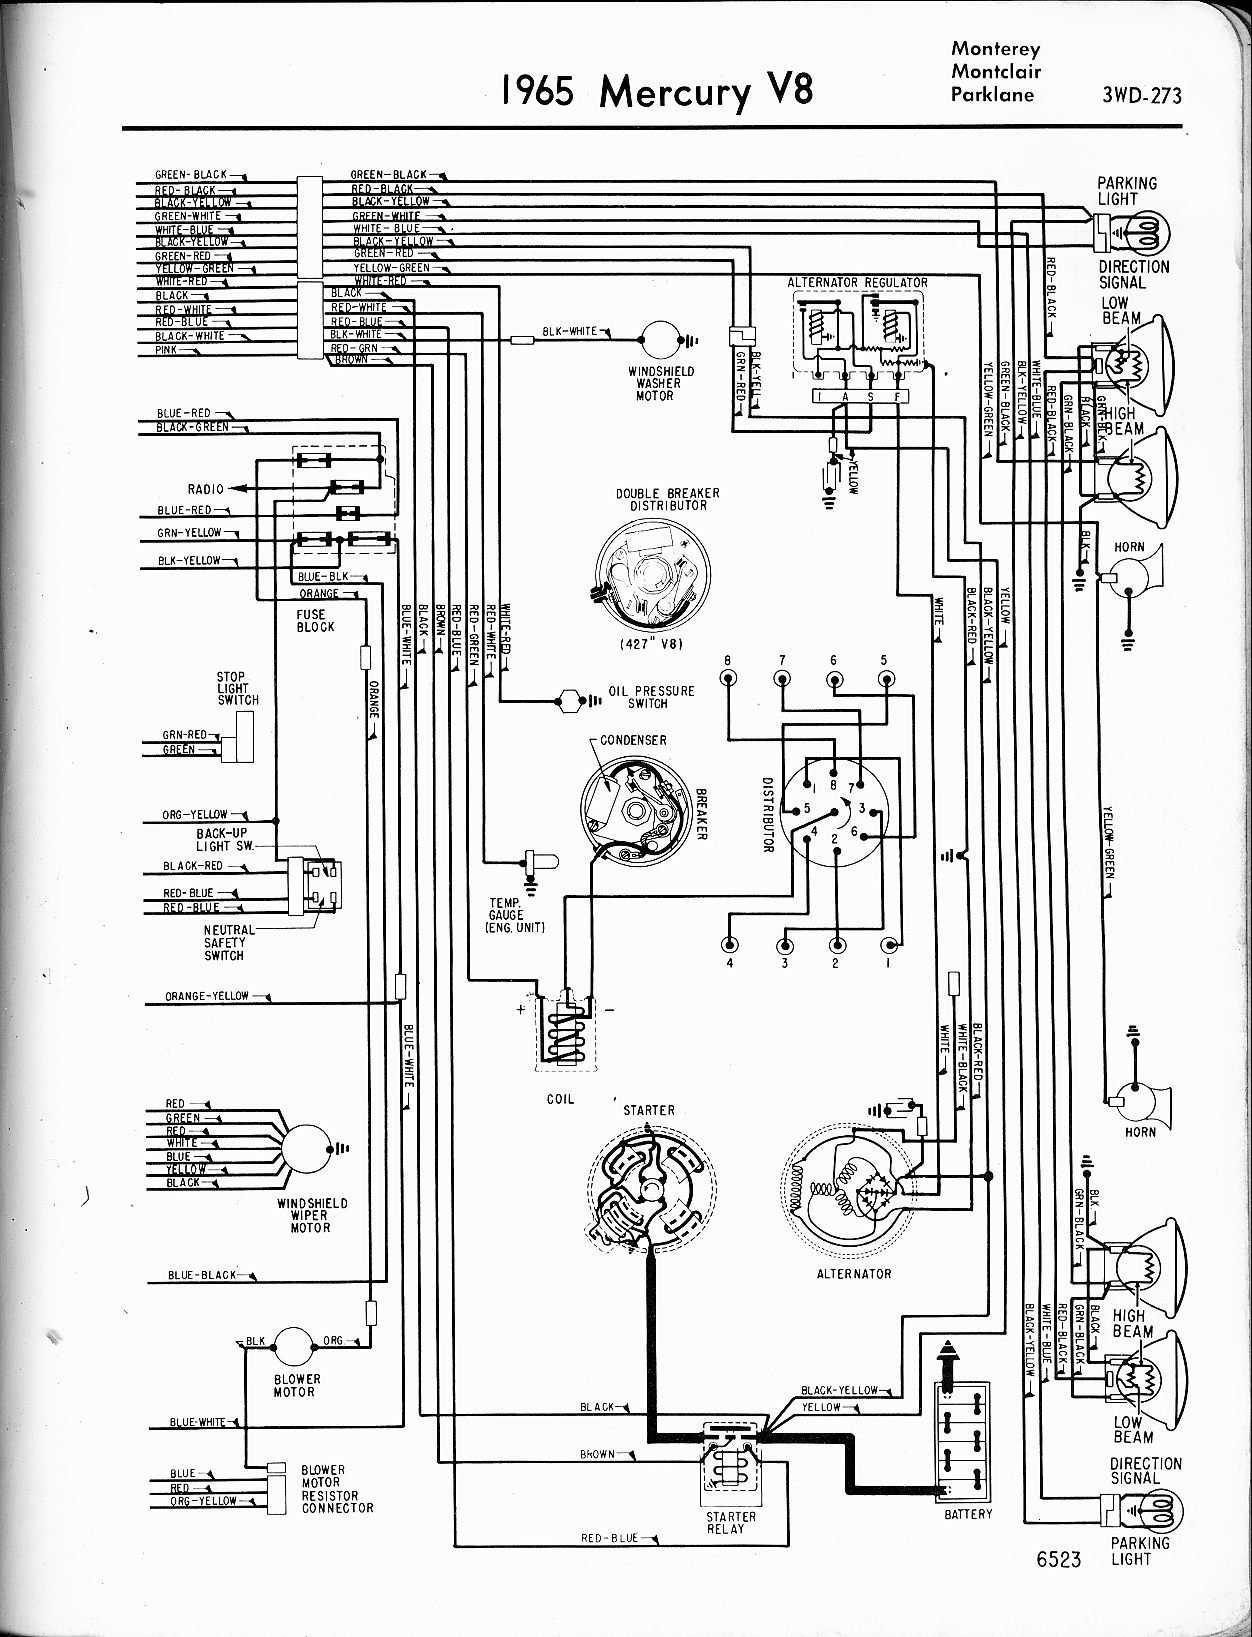 i have a 68 mercury cougar and need to find a wire diagram